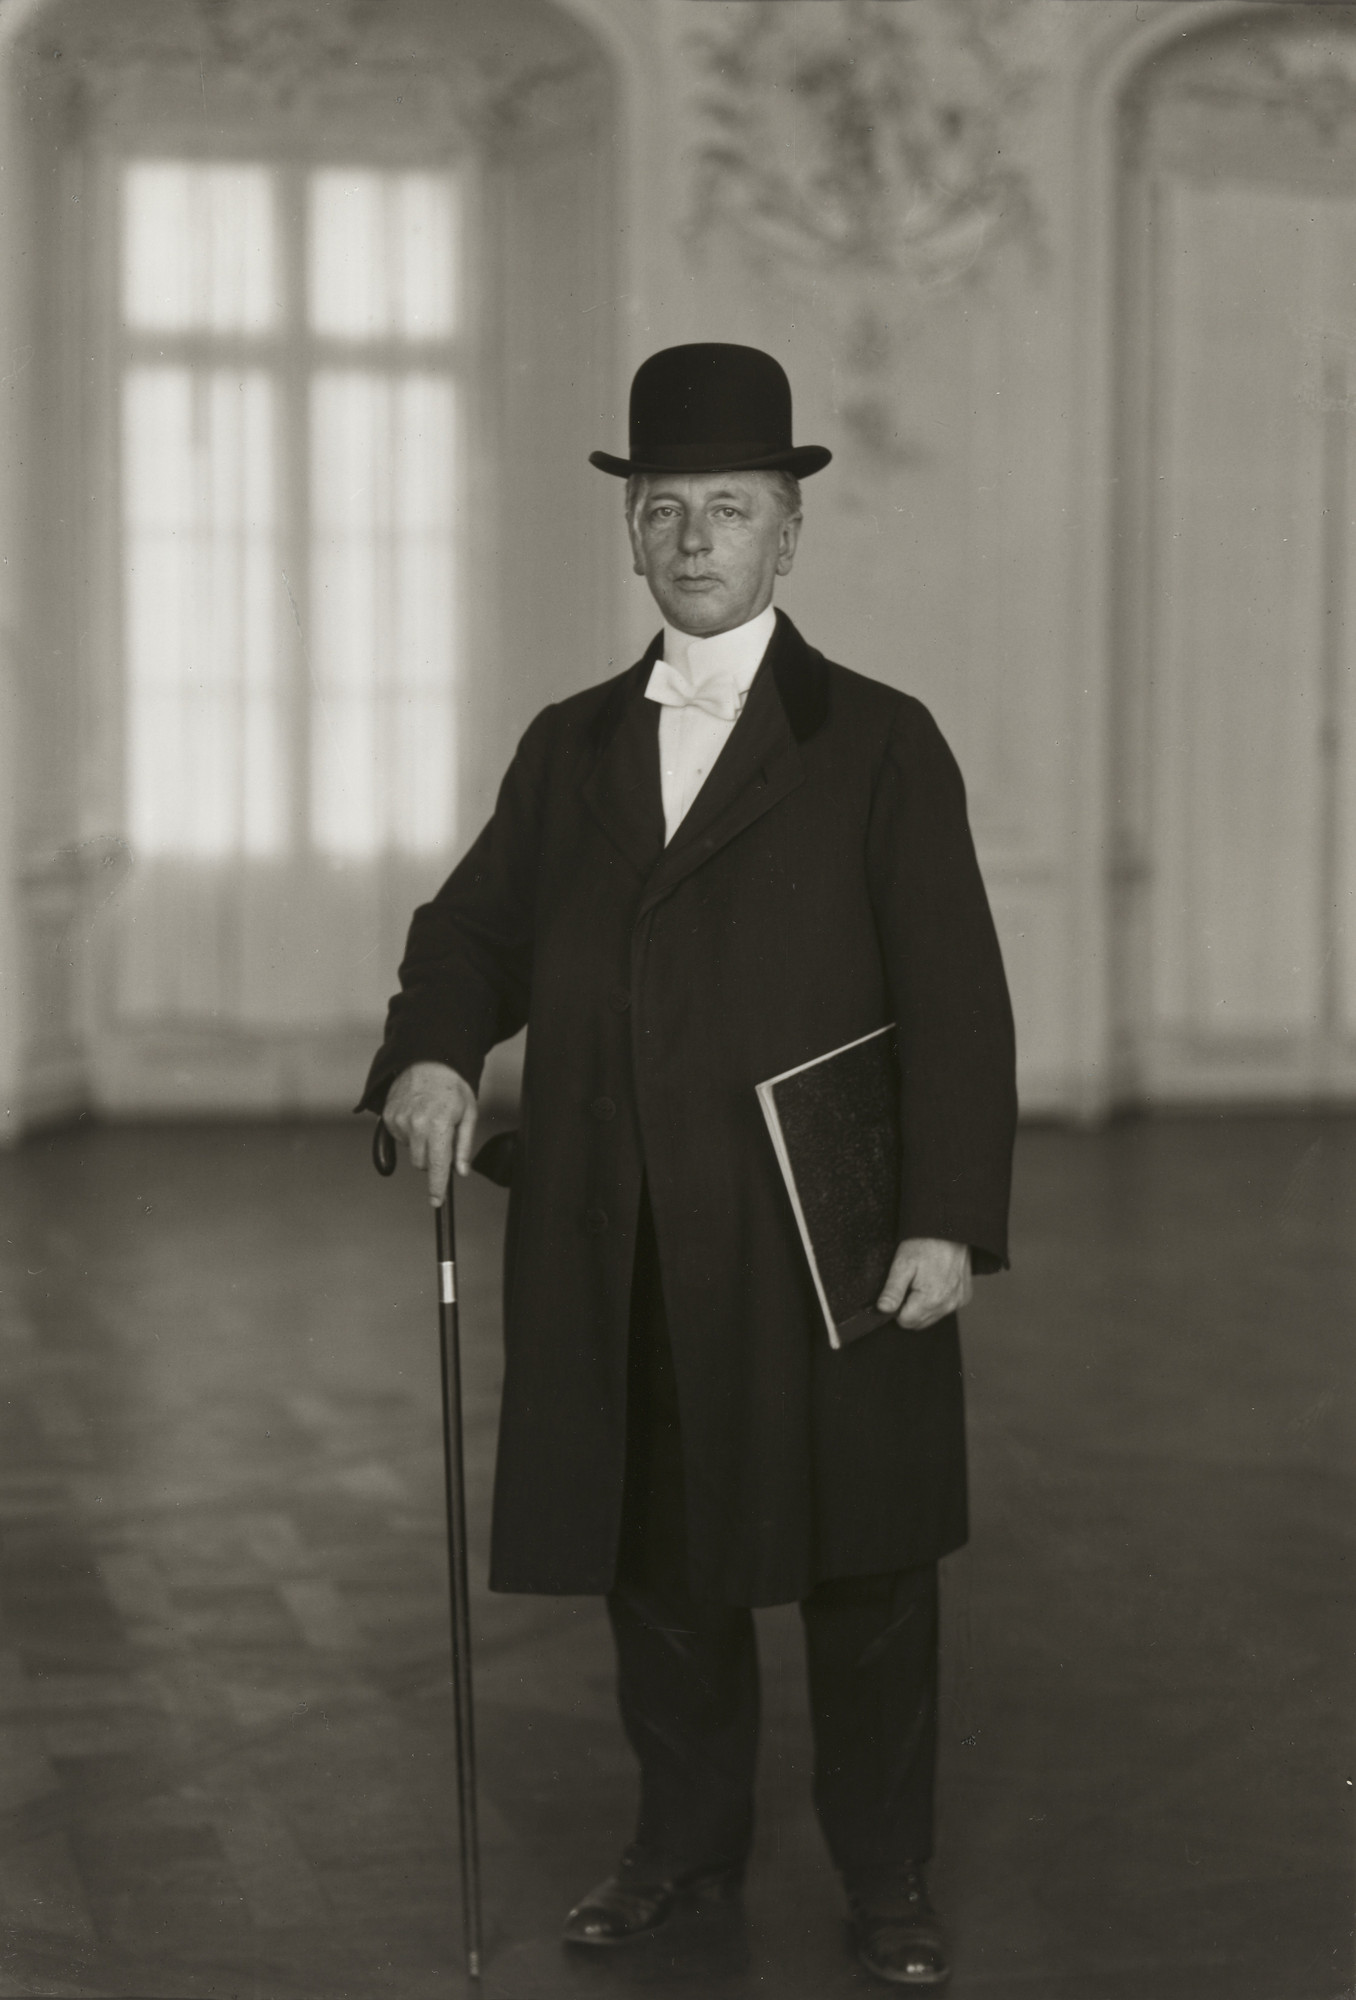 August Sander. The Pianist [Max van de Sandt]. c. 1925